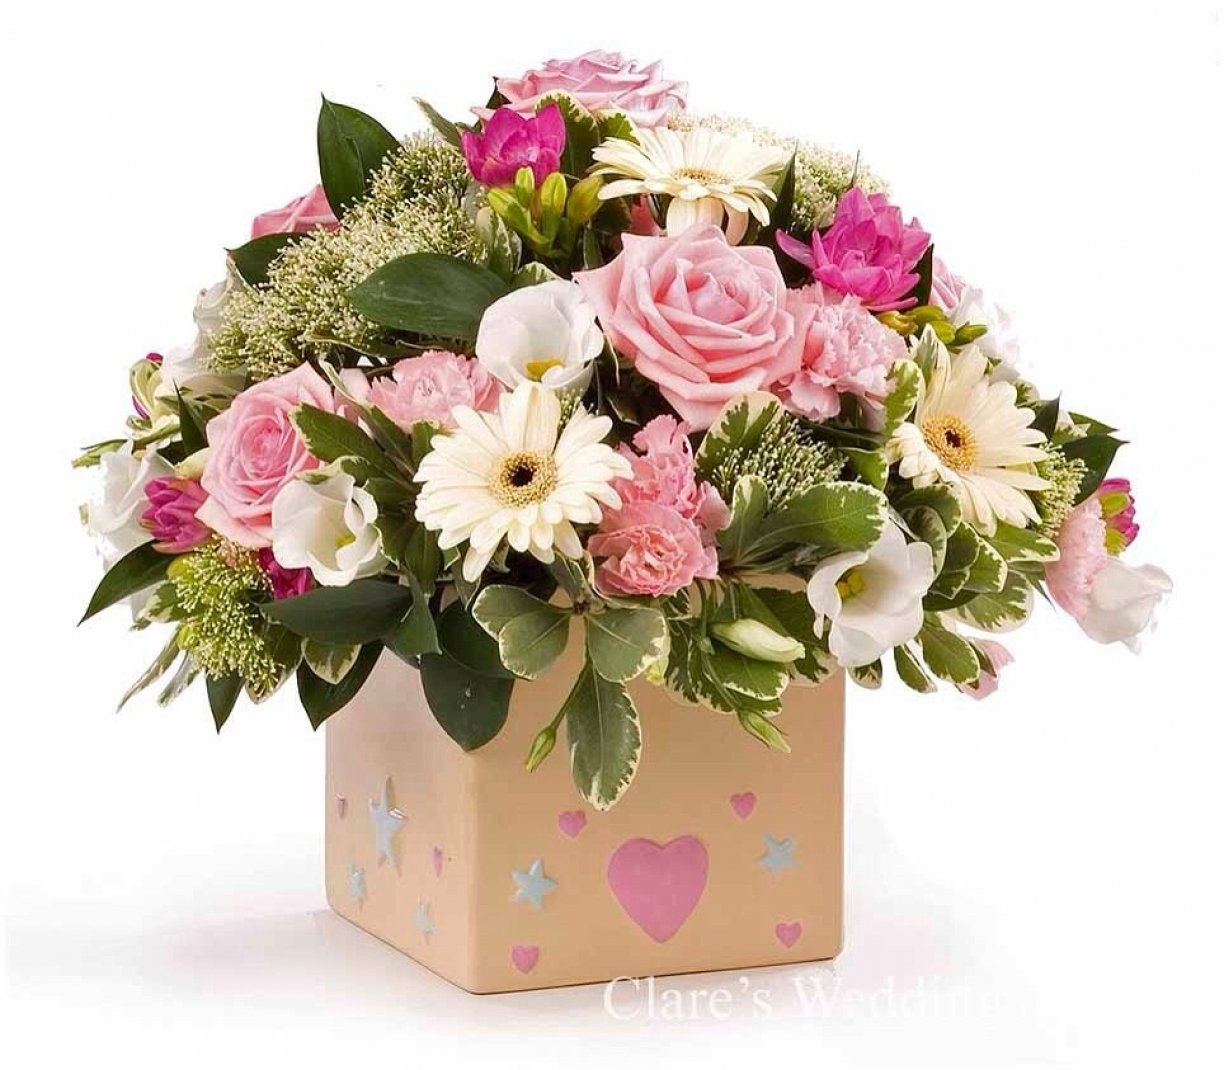 Flowers arranged & gift wrapped in a box or bag!